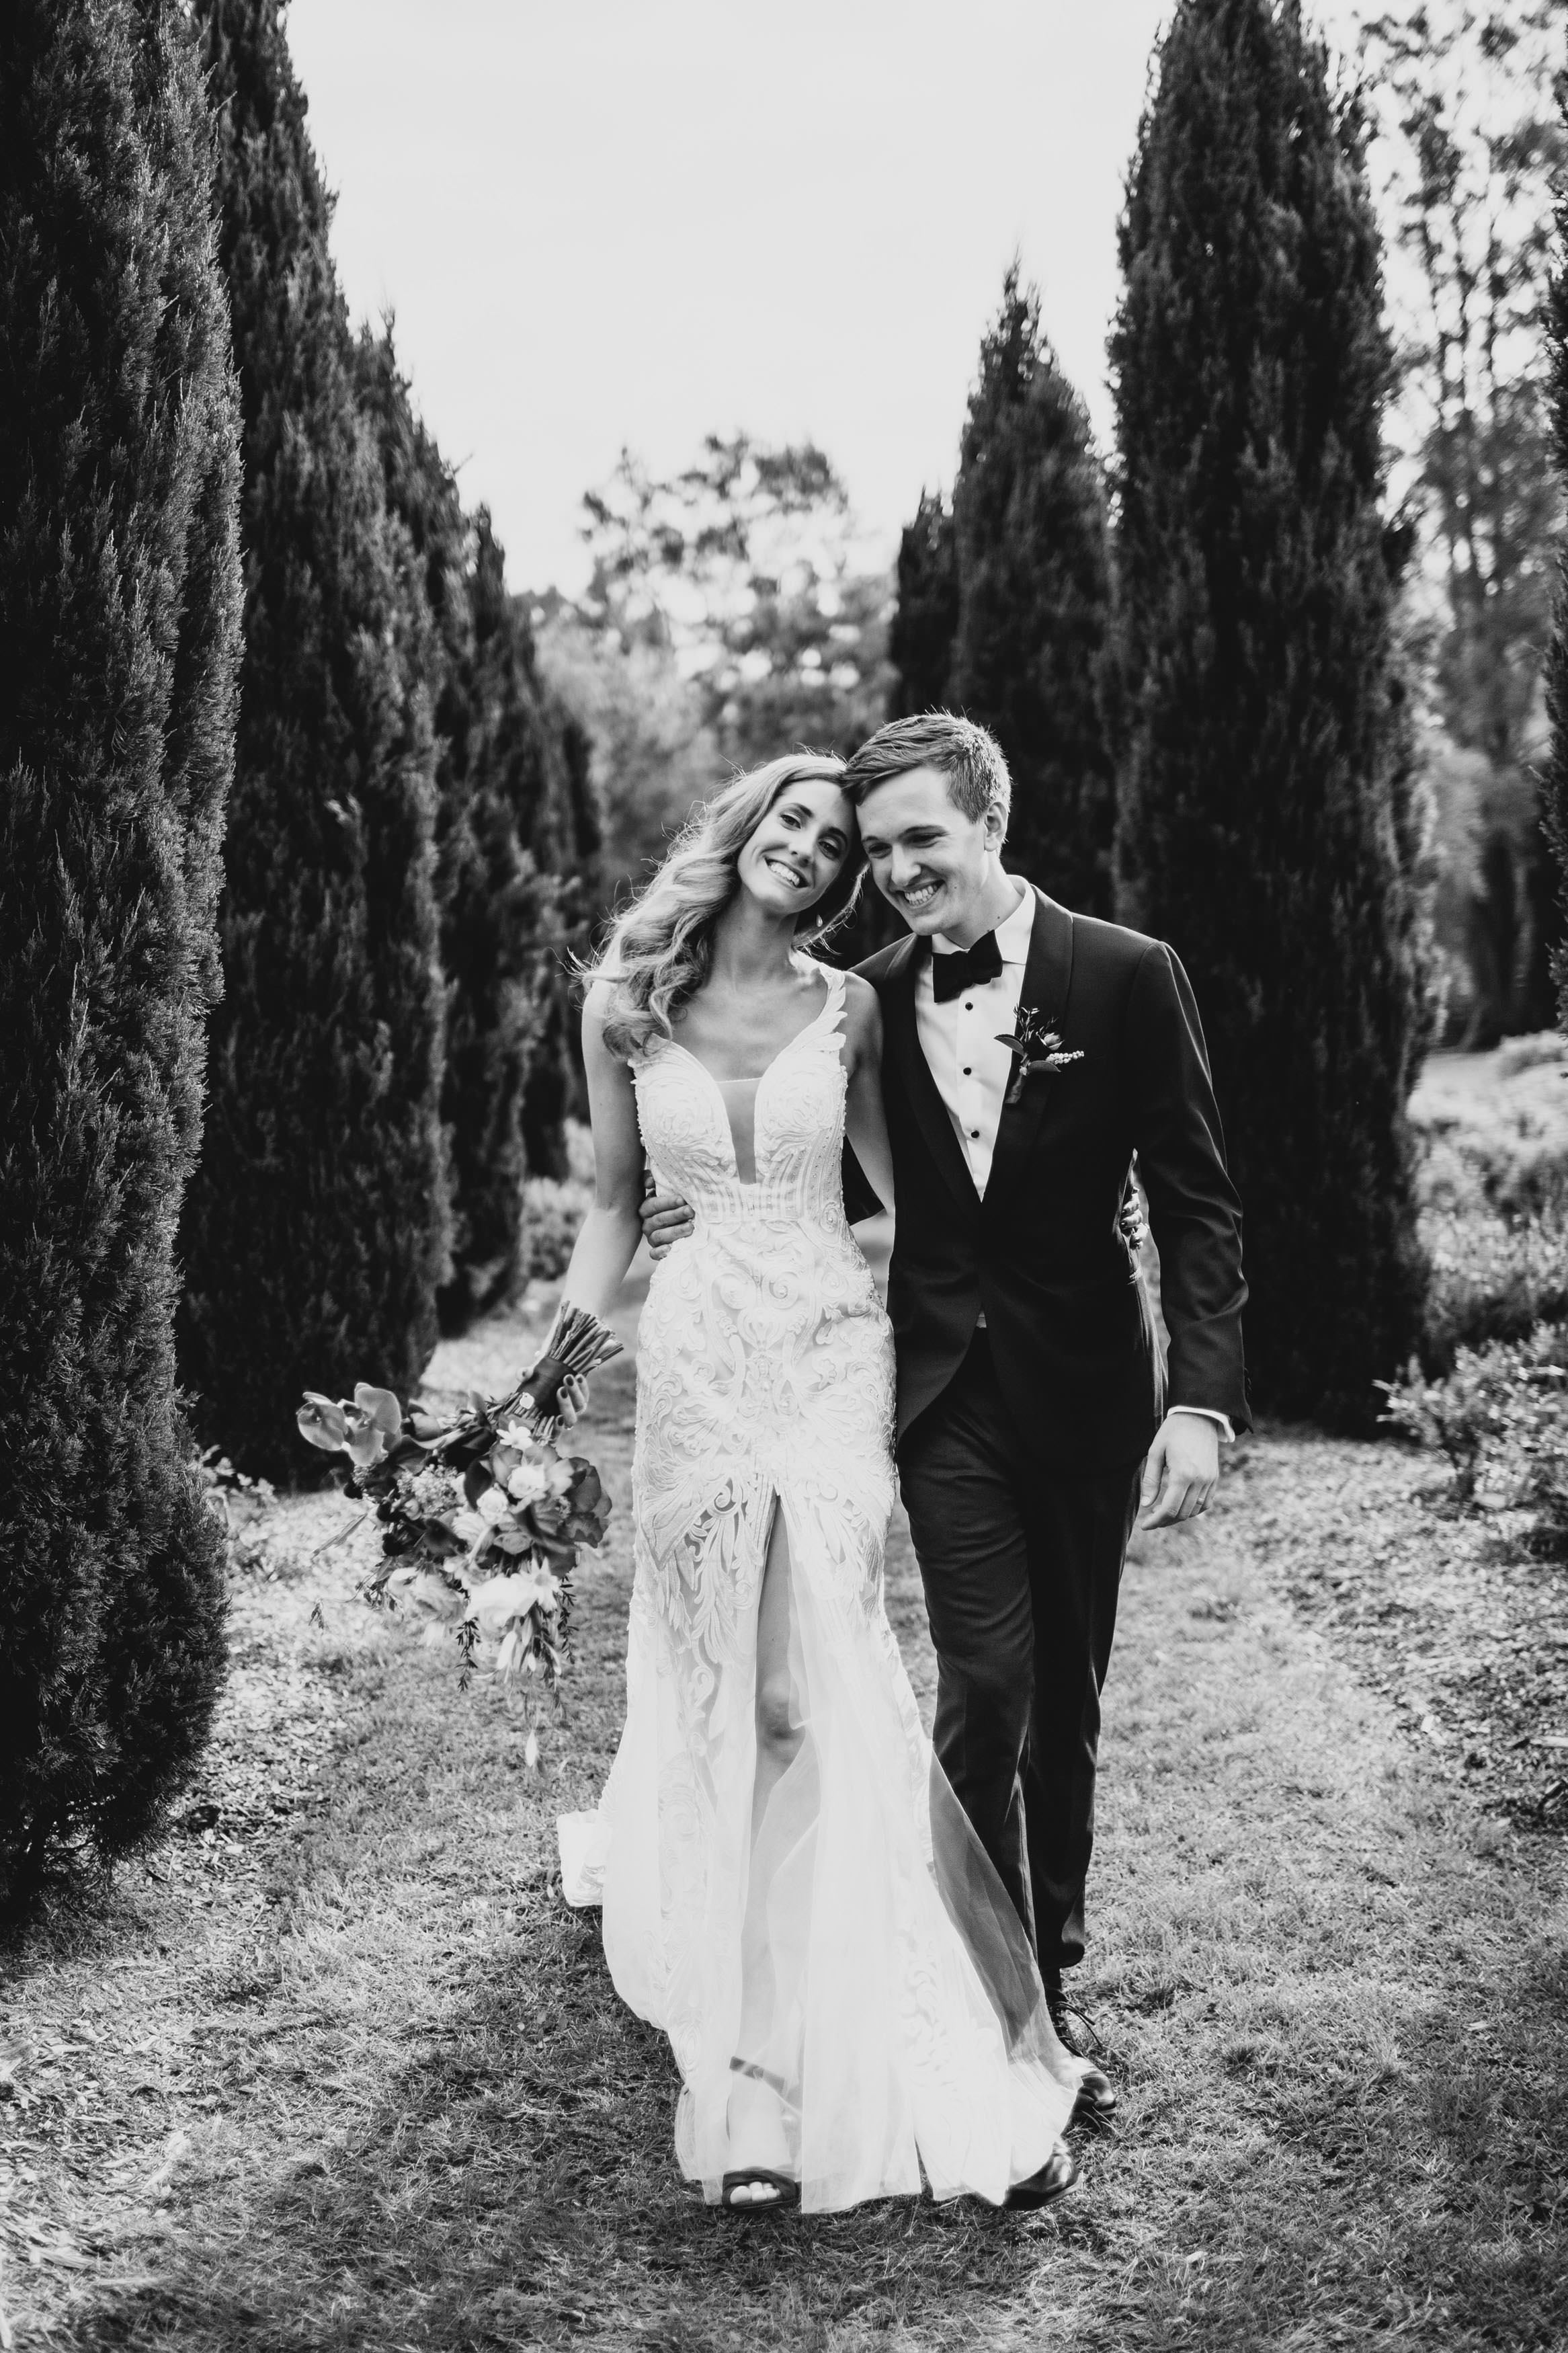 059_hunter_valley_wedding_photography_redleaf_paul_bamford_finchandoak.jpg